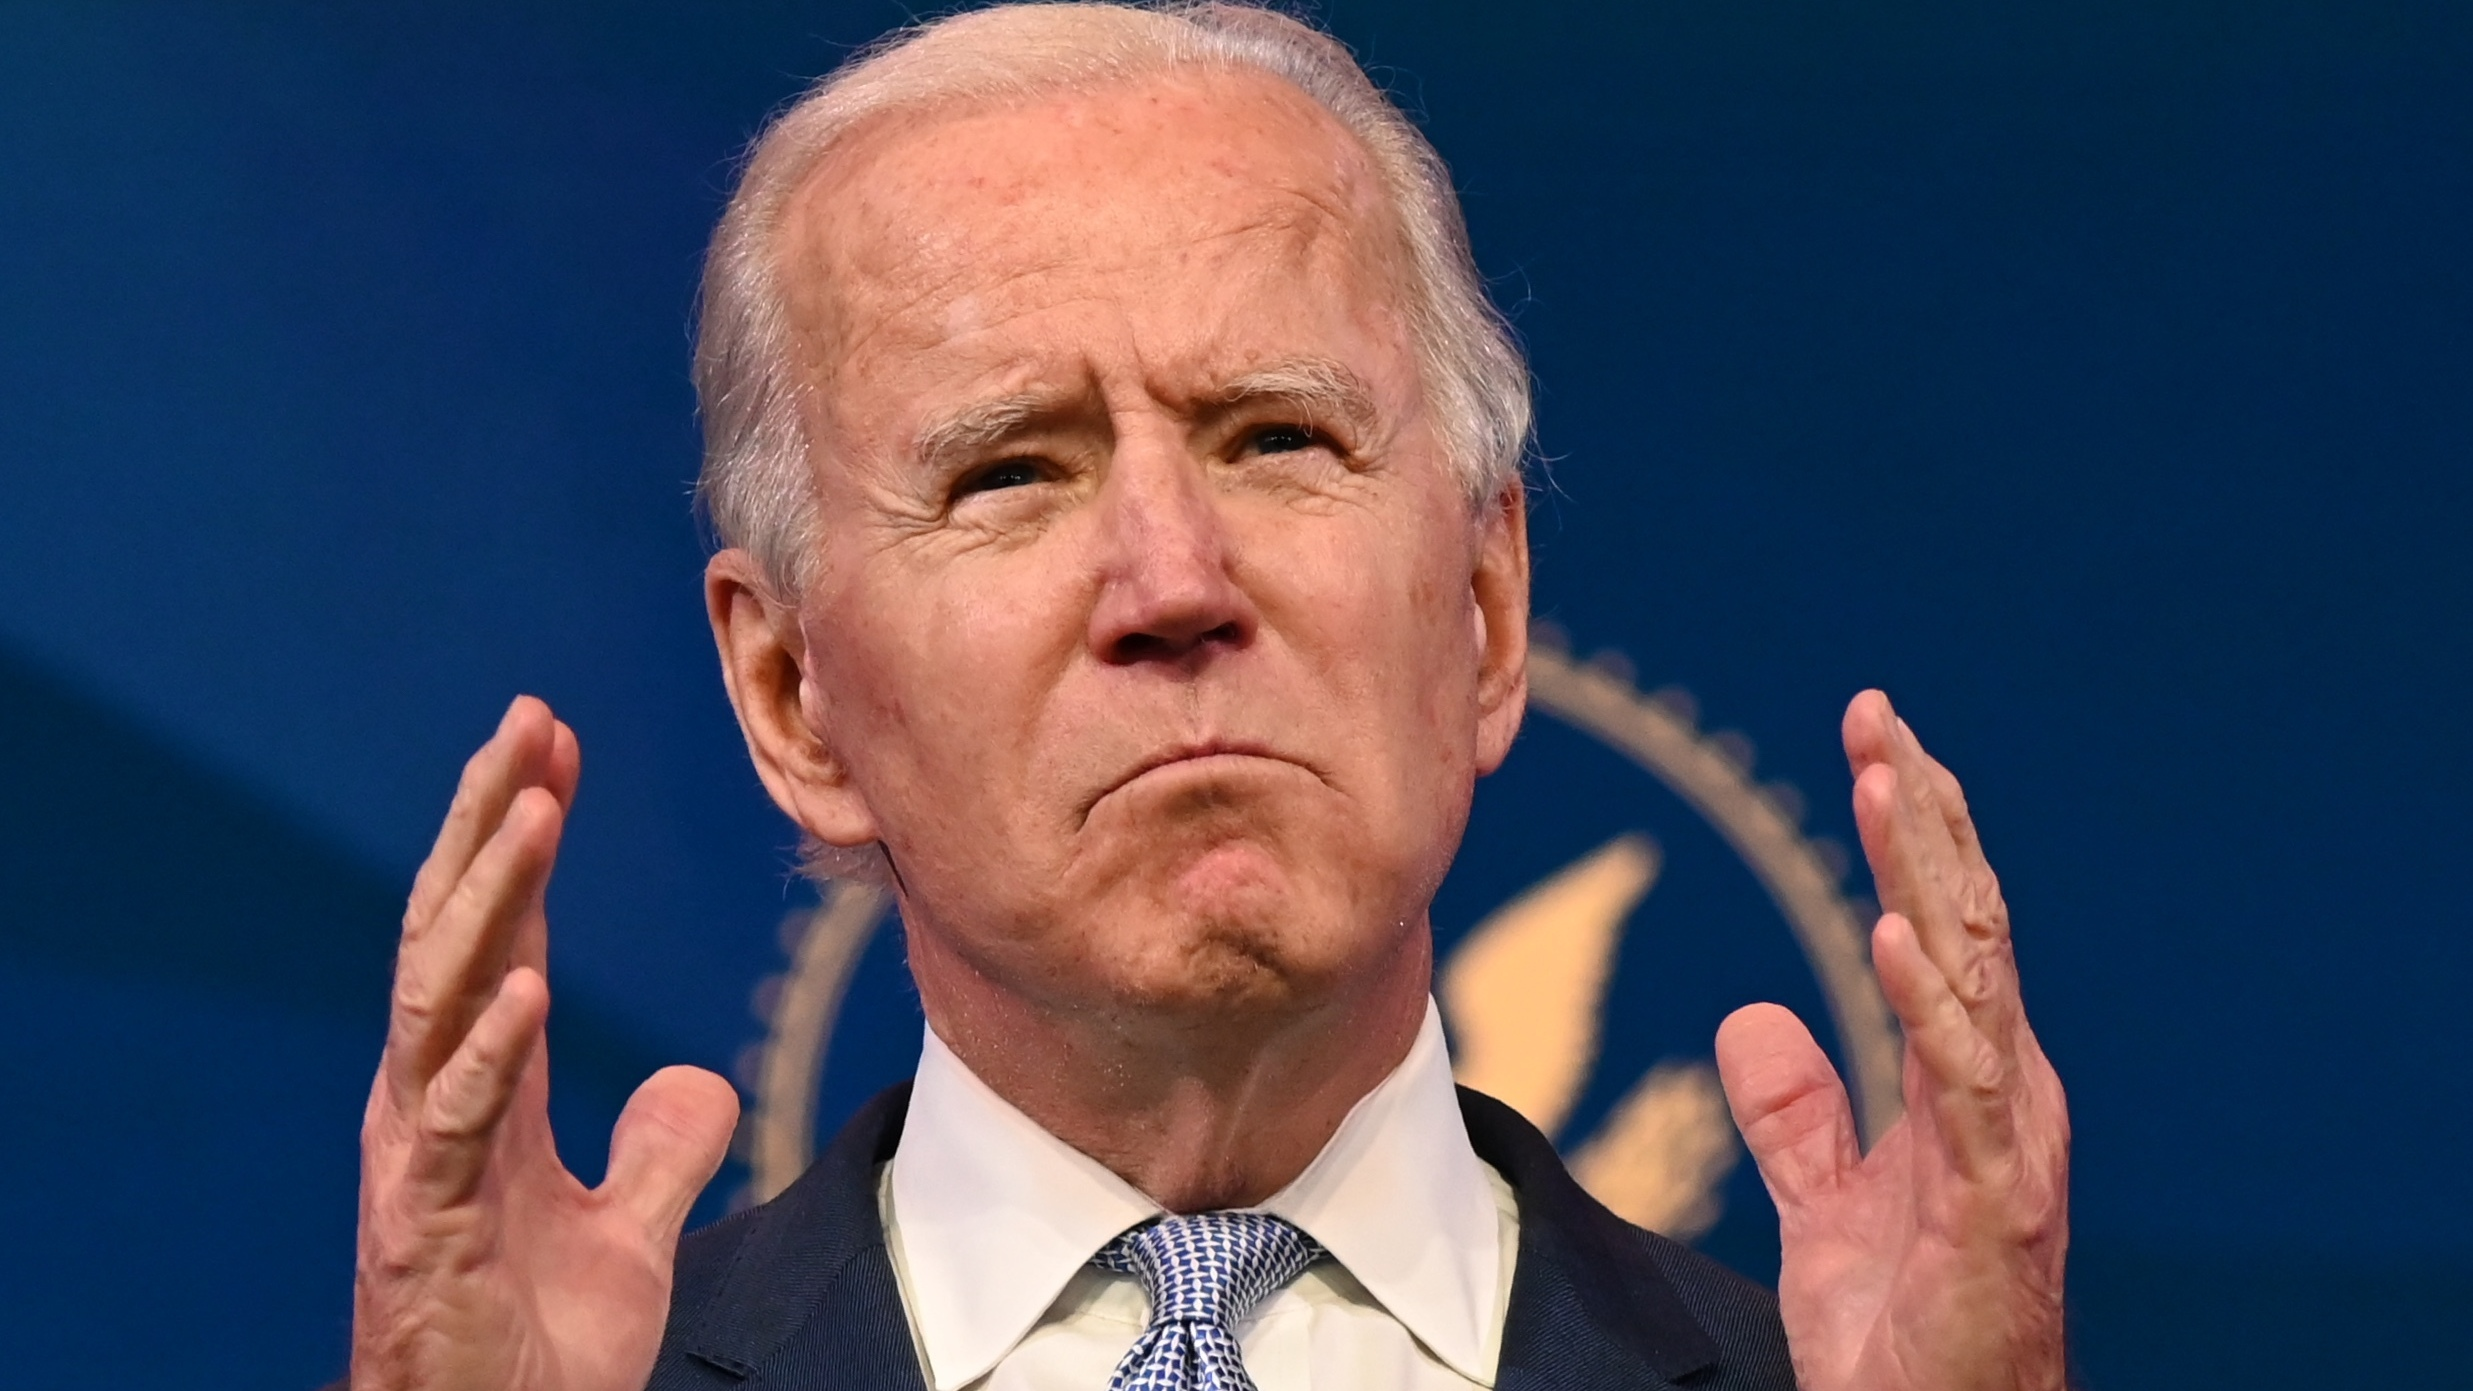 """President-elect Joe Biden said U.S. democracy is """"under unprecedented assault"""" in remarks on the storming of the U.S. Capitol by pro-Trump extremists on Wednesday. Above, he speaks at the Queen Theater in Wilmington, Del., on Tuesday."""